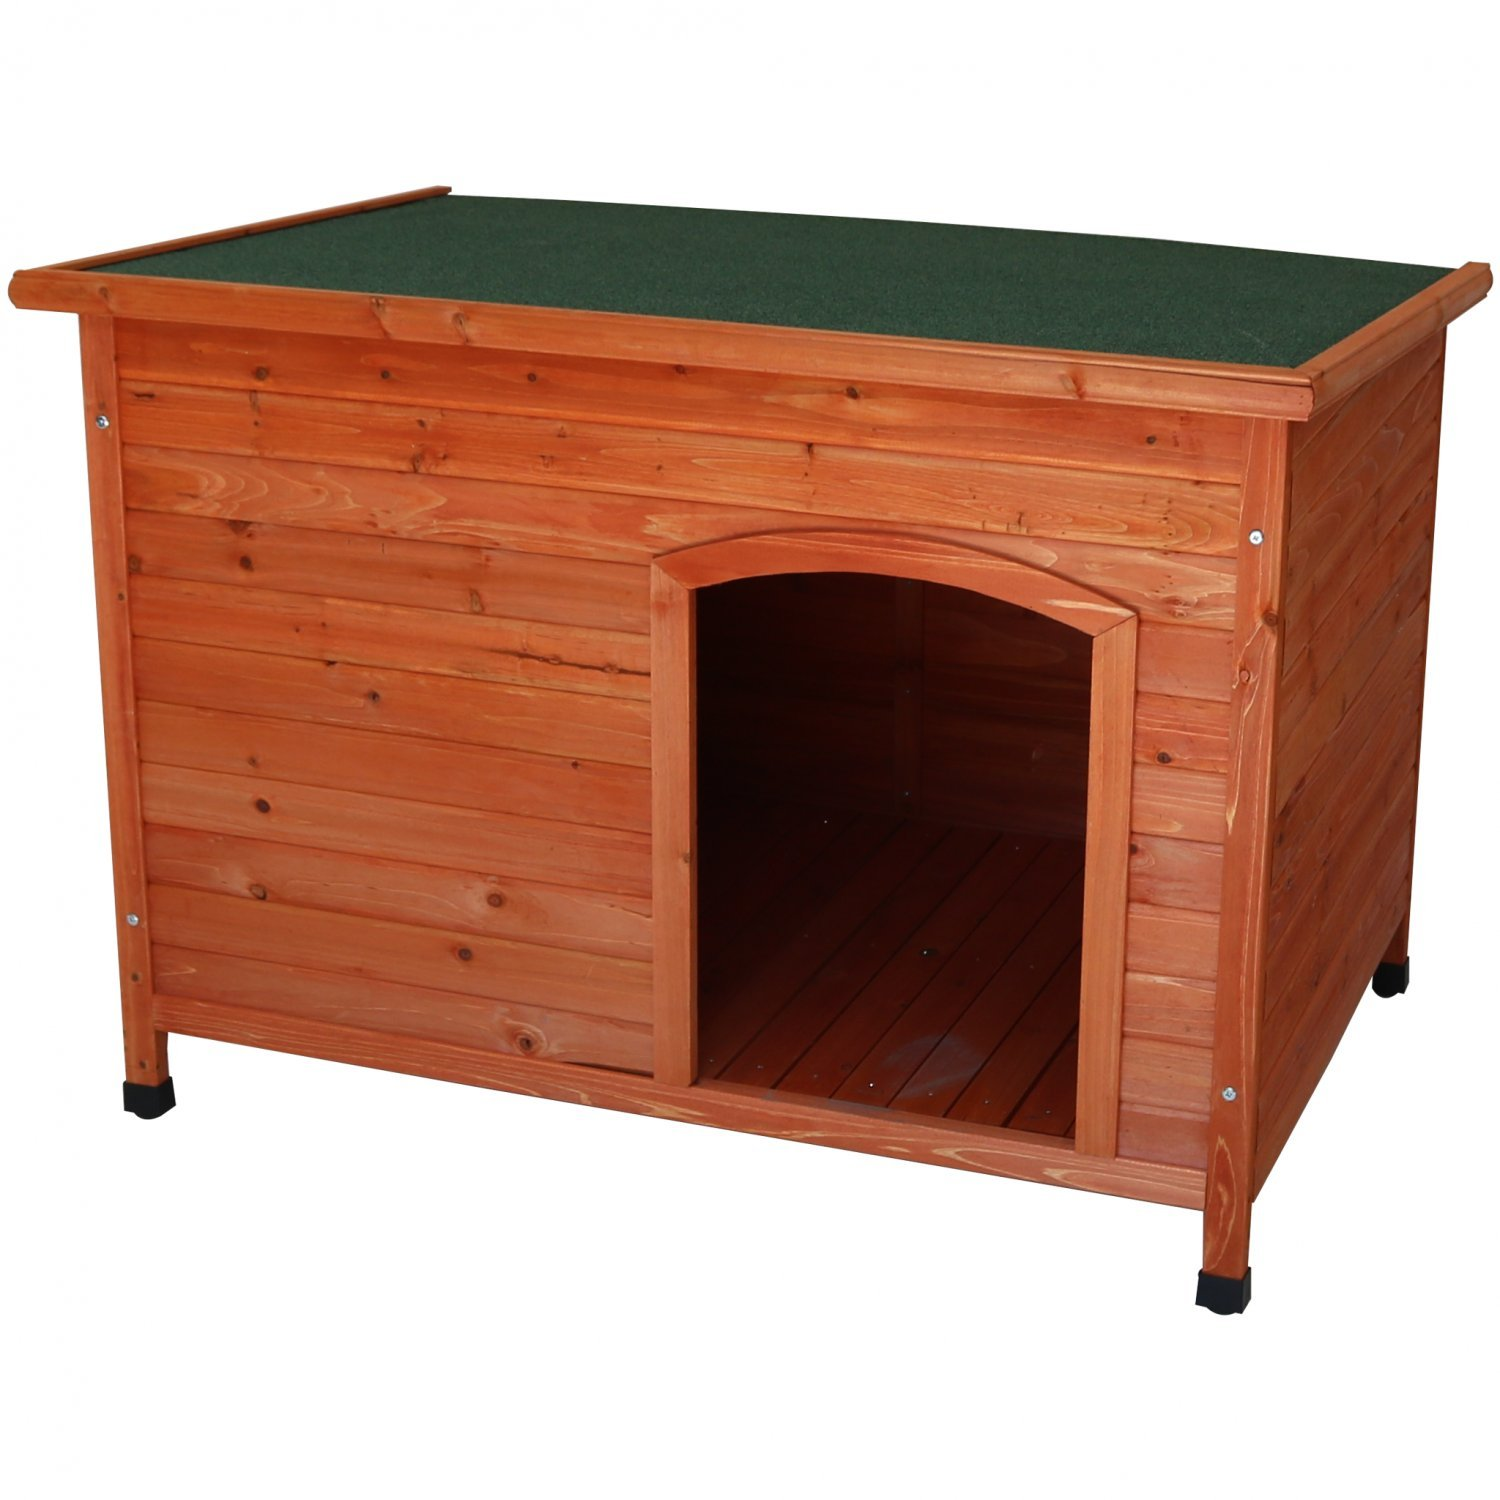 Dog House With Temovable Lid